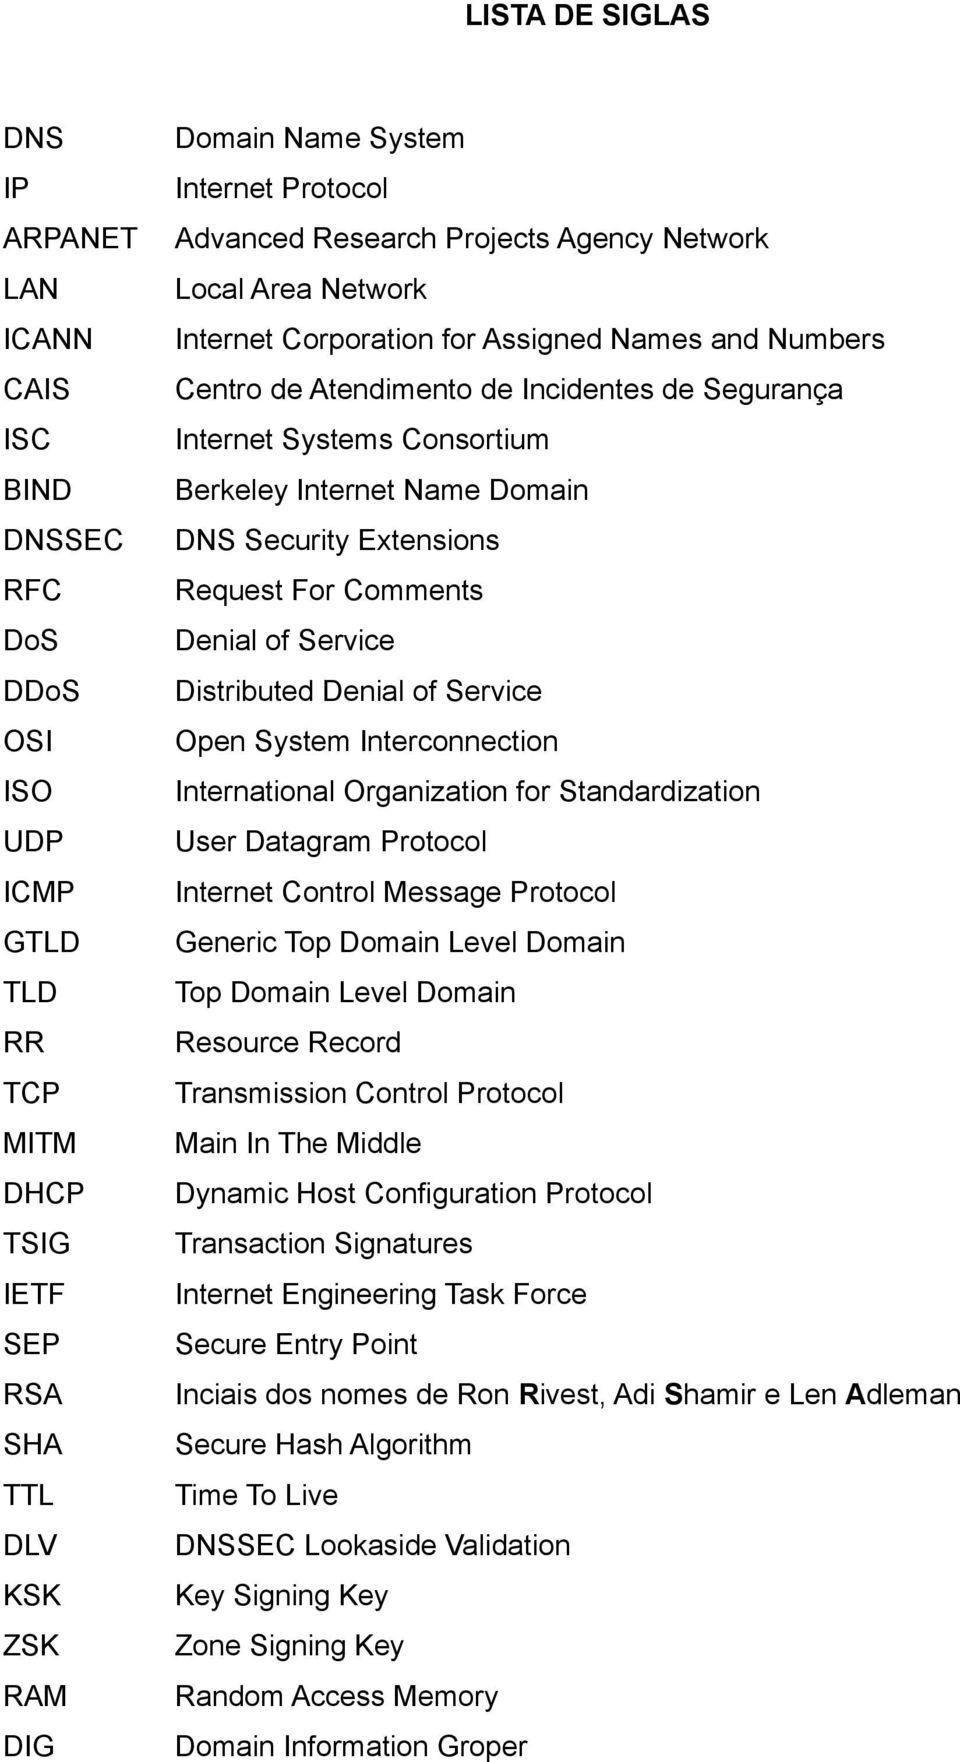 Distributed Denial of Service OSI Open System Interconnection ISO International Organization for Standardization UDP User Datagram Protocol ICMP Internet Control Message Protocol GTLD Generic Top